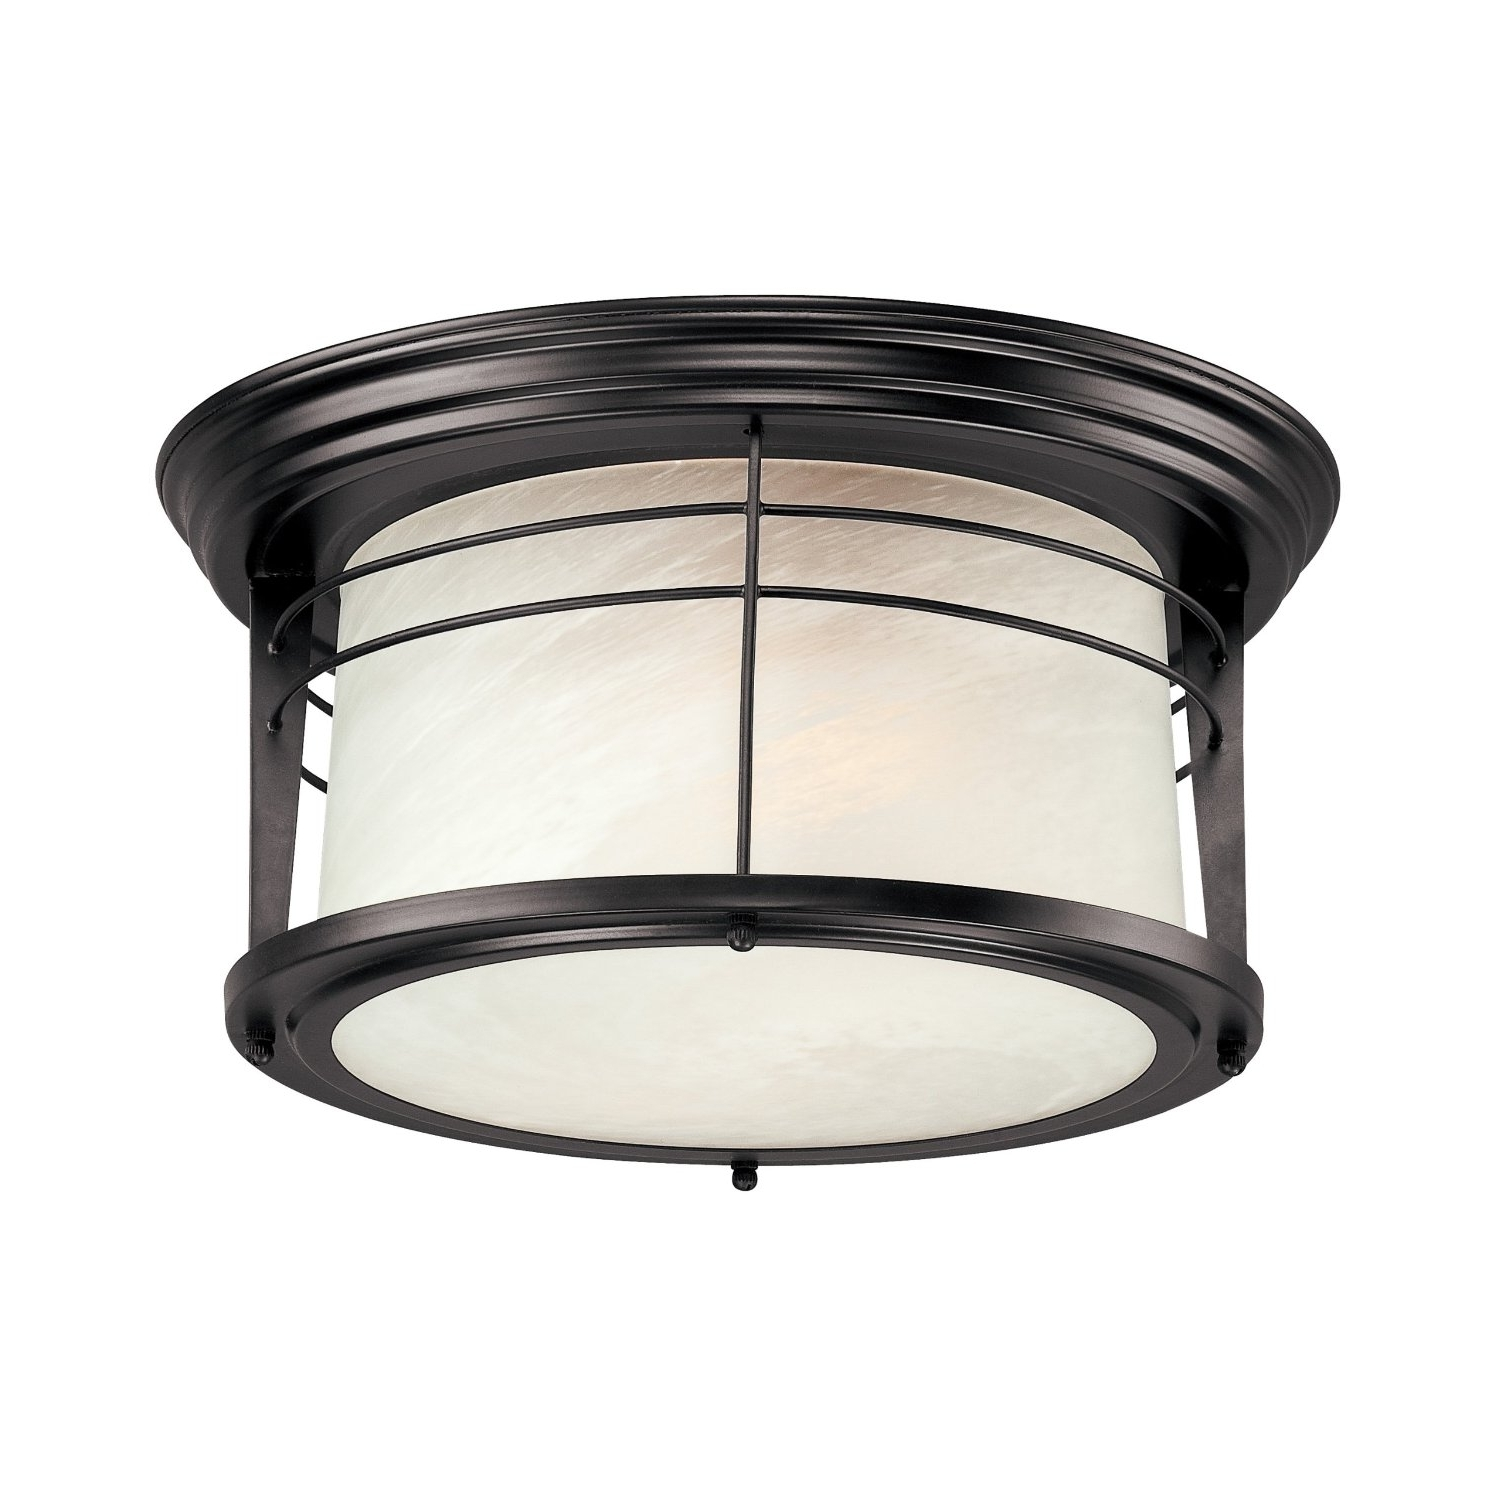 Outdoor Ceiling Pir Lights In 2019 Outdoor Ceiling Mount Motion Light: 21 Terrific Outdoor Motion (View 11 of 20)